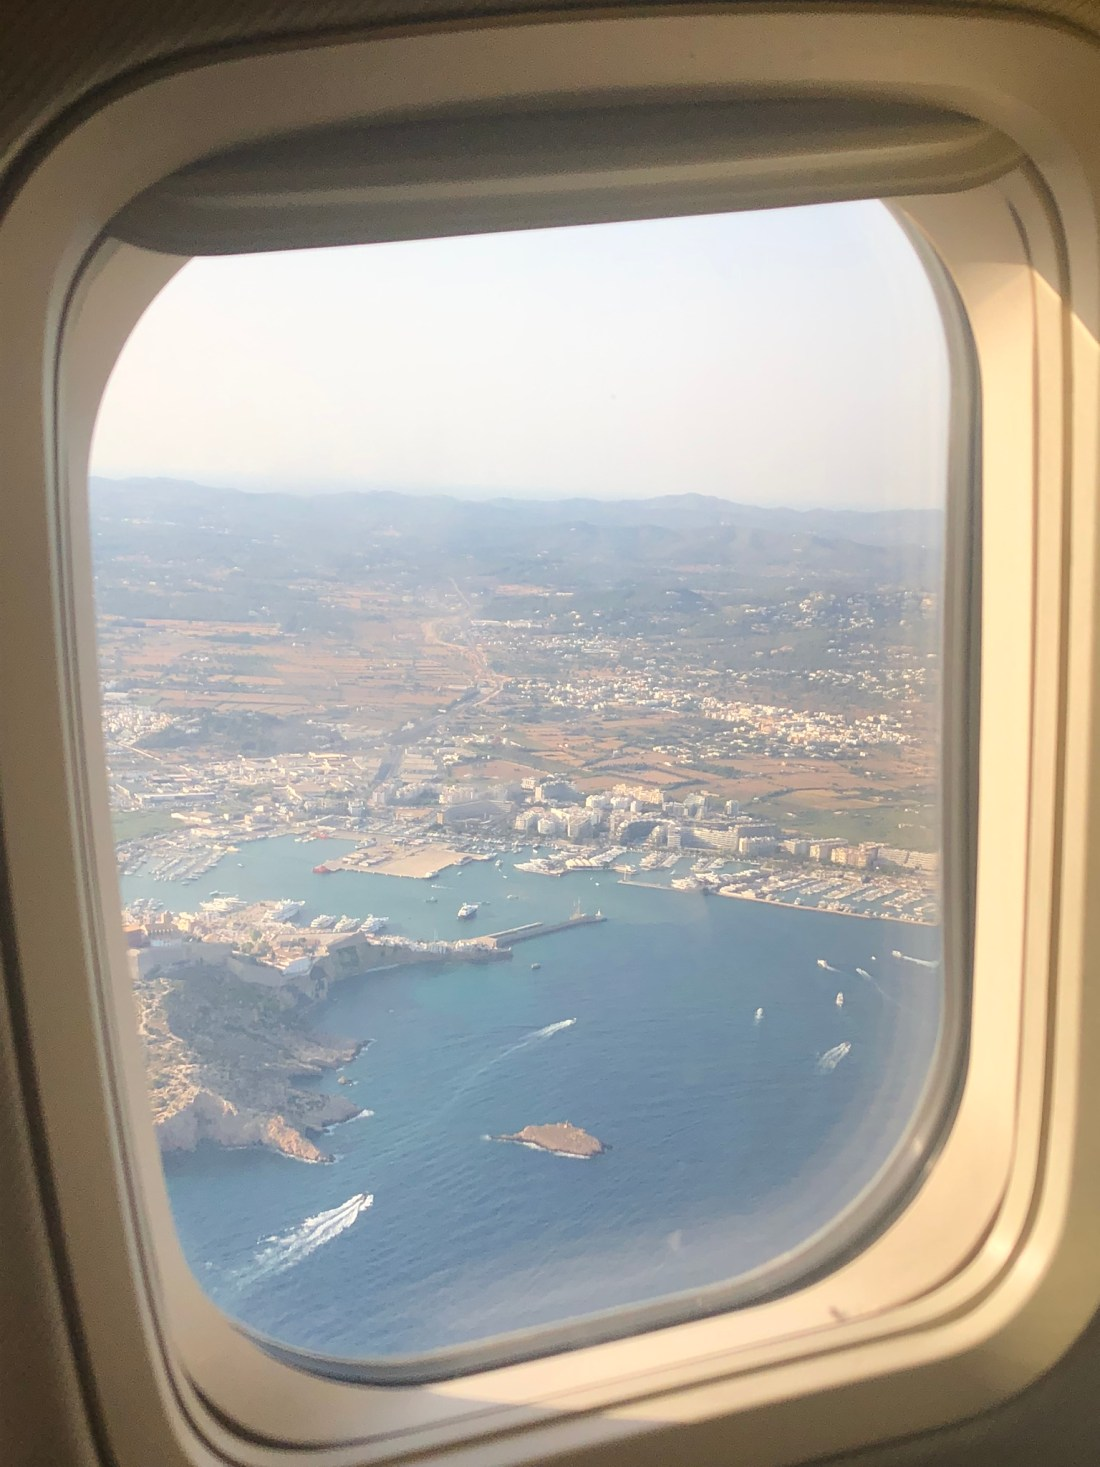 View of Ibiza from the plane